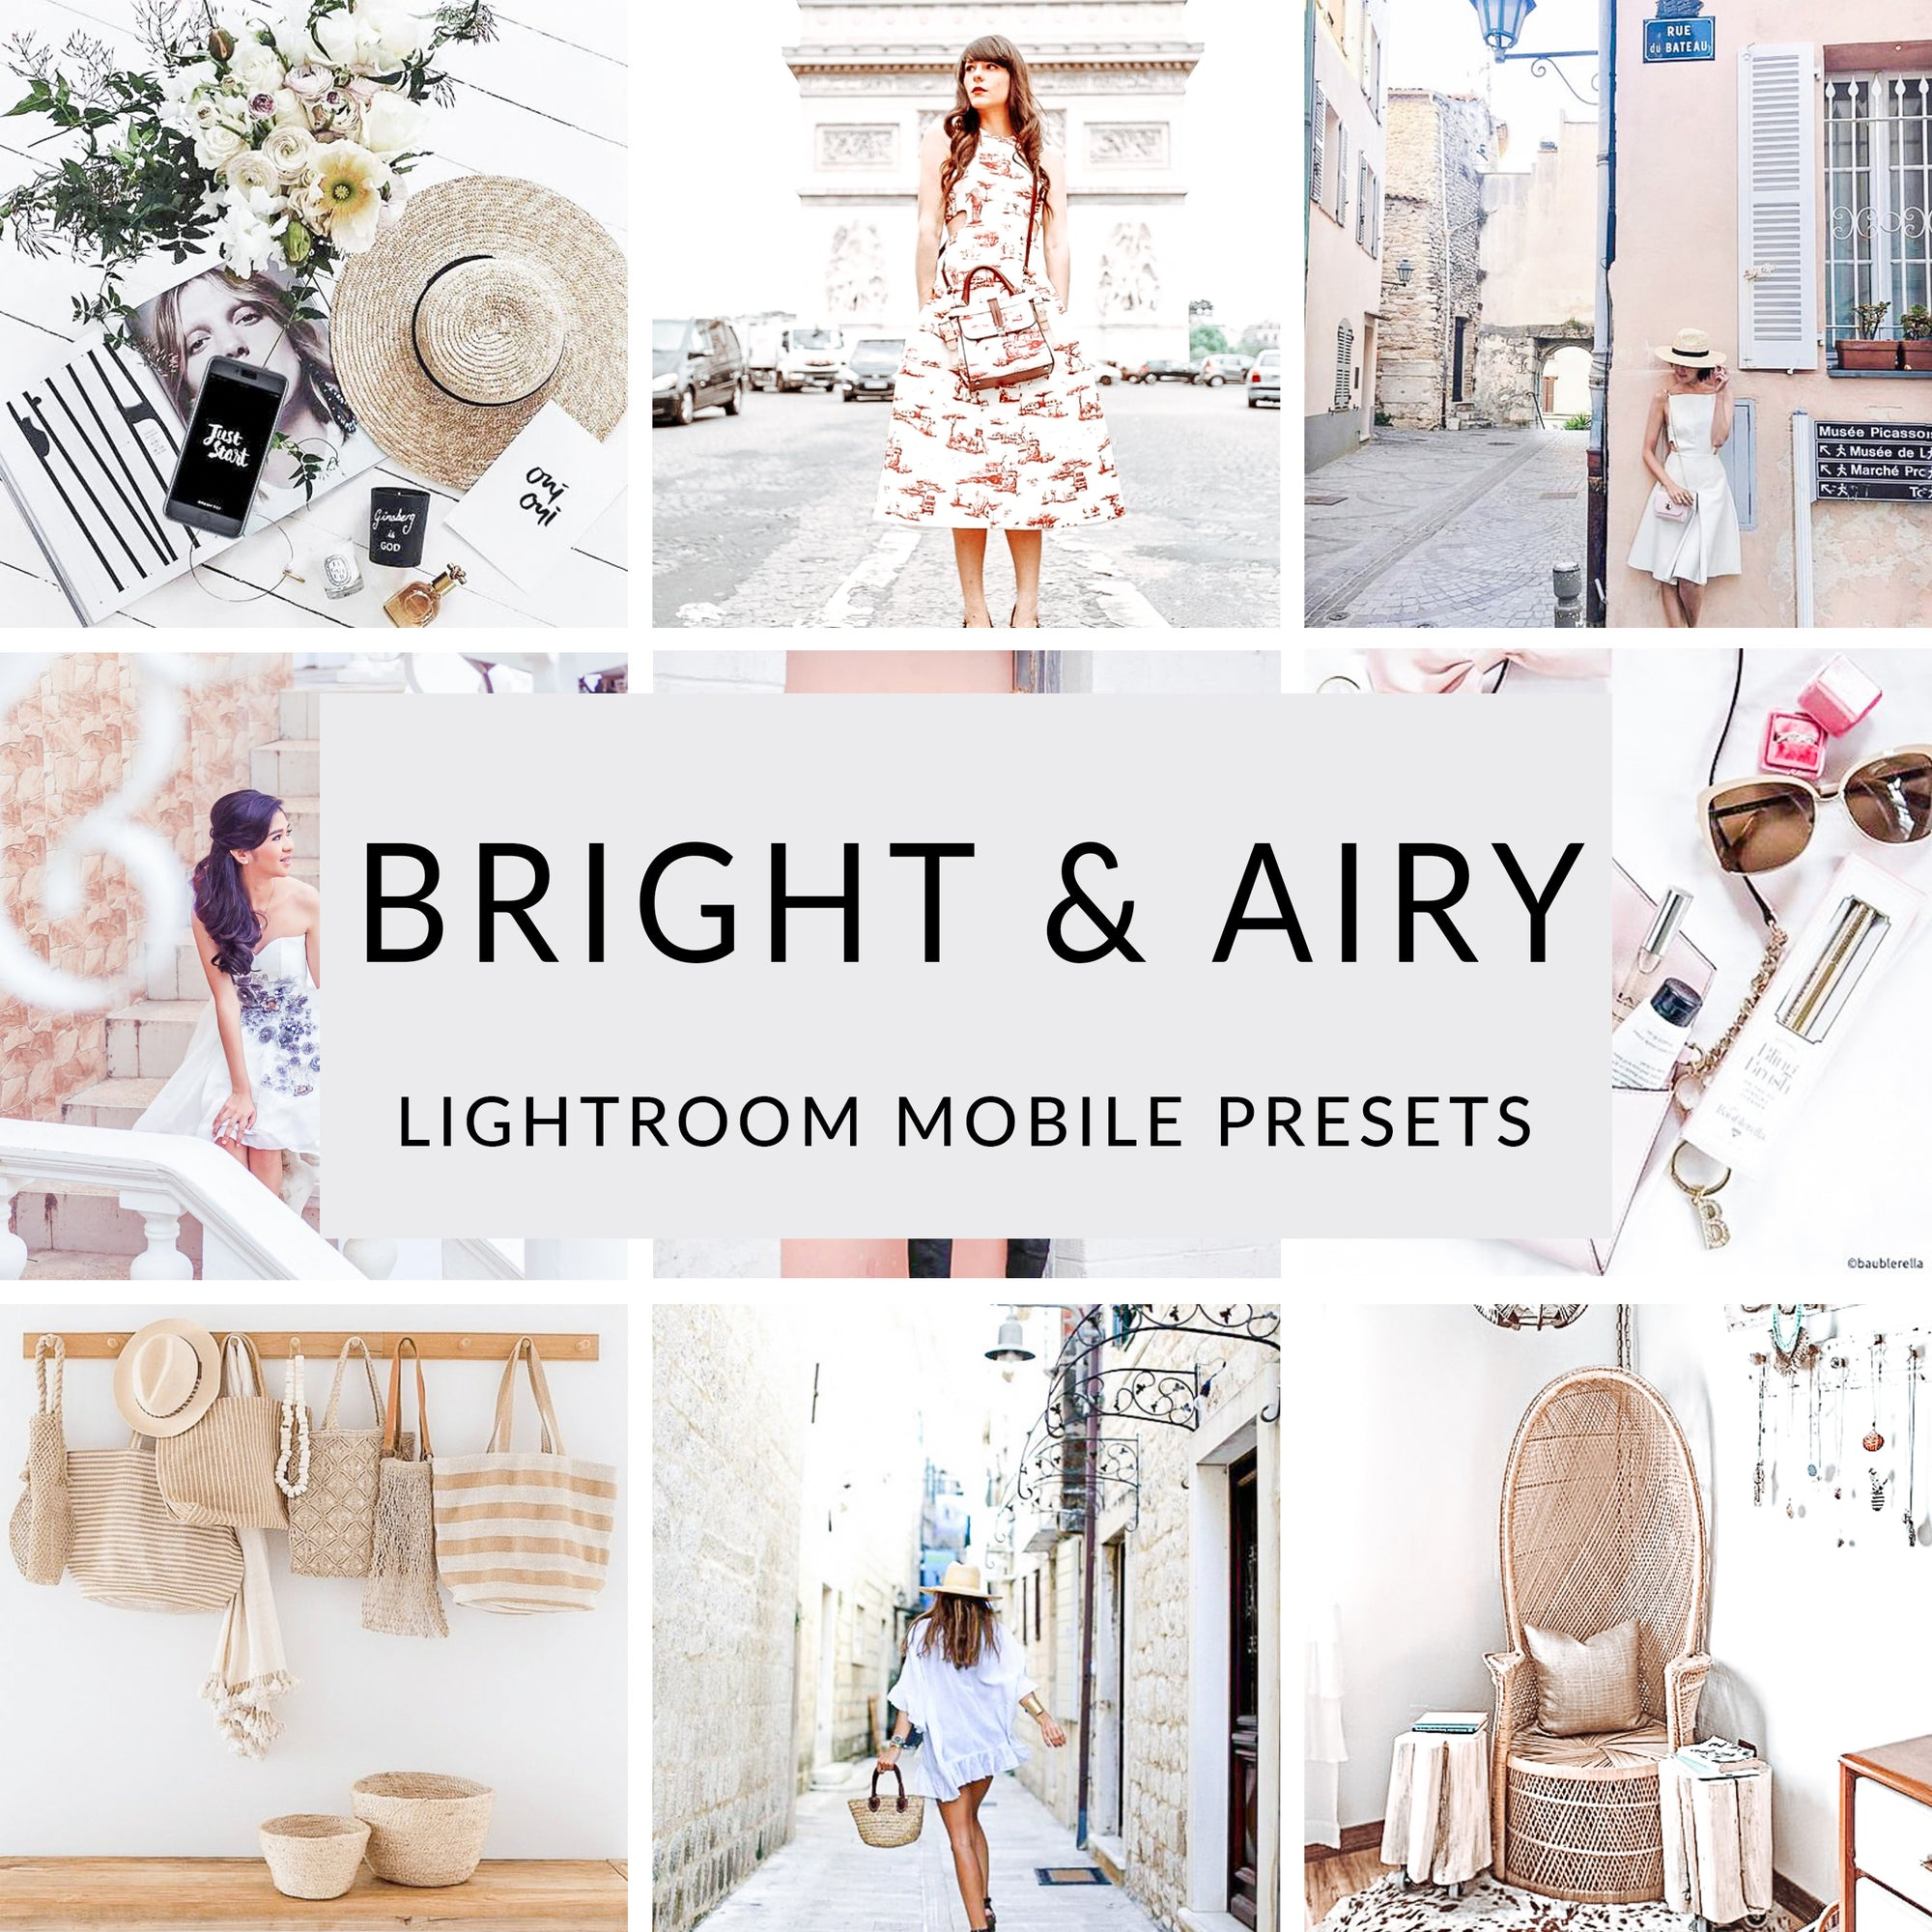 Bright & Airy Lightroom Mobile Presets